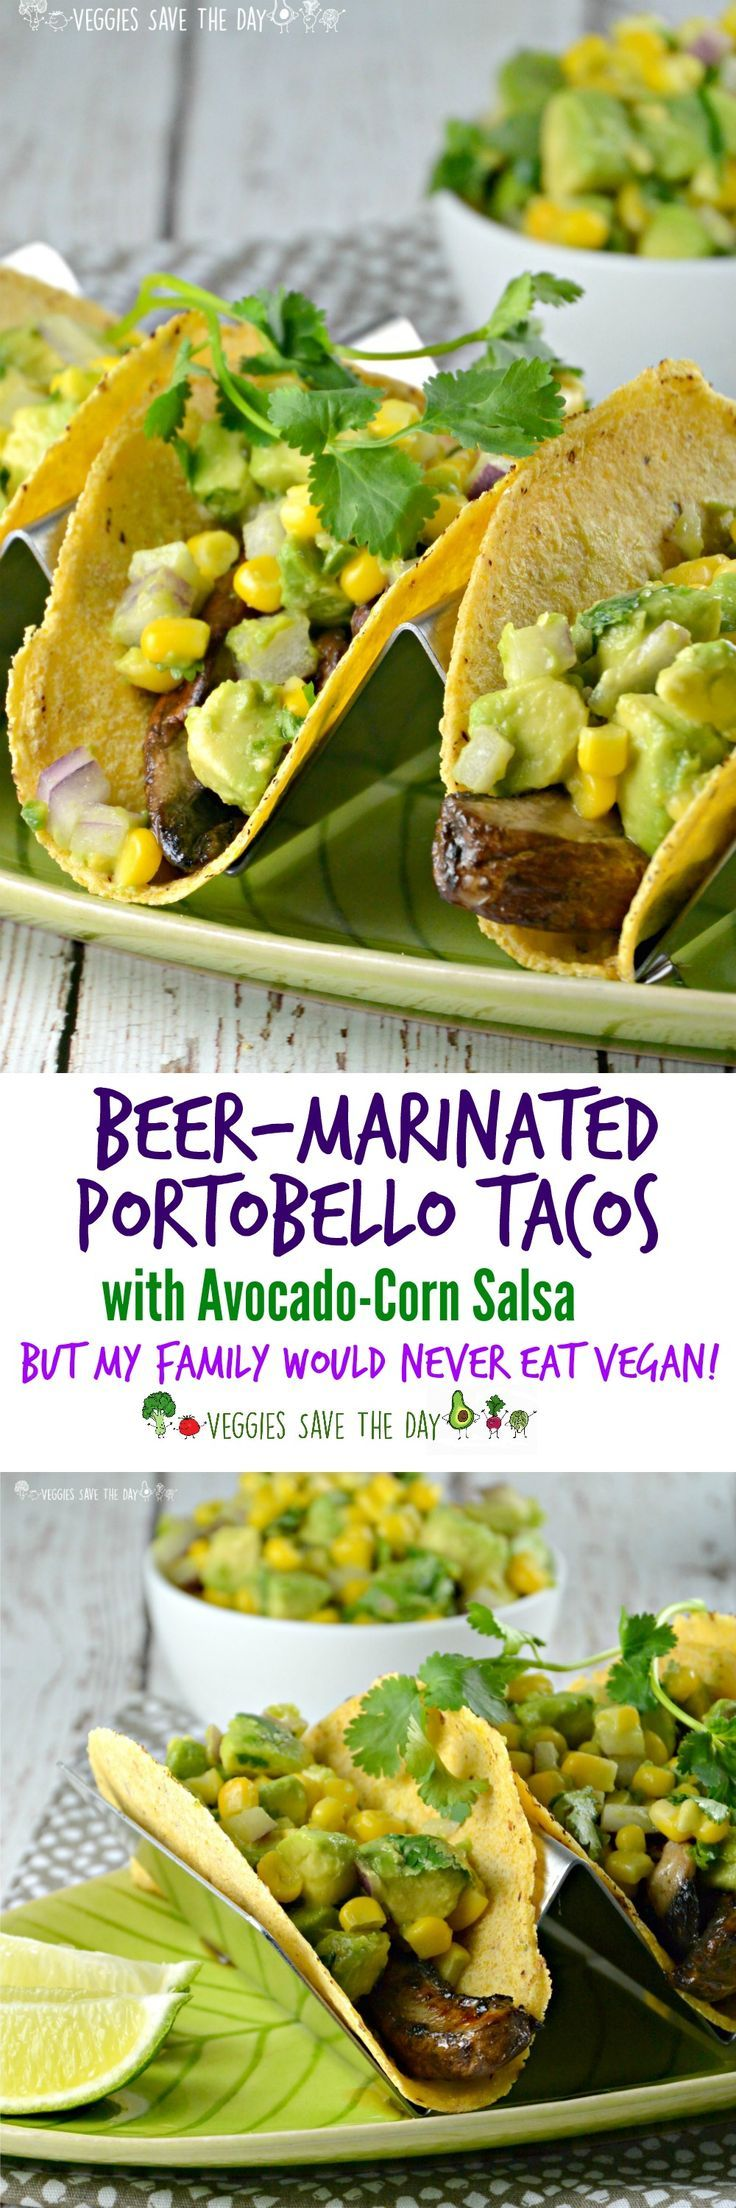 Beer-Marinated Portobello Tacos with Avocado-Corn Salsa from But My Family Would Never Eat Vegan! by Kristy Turner